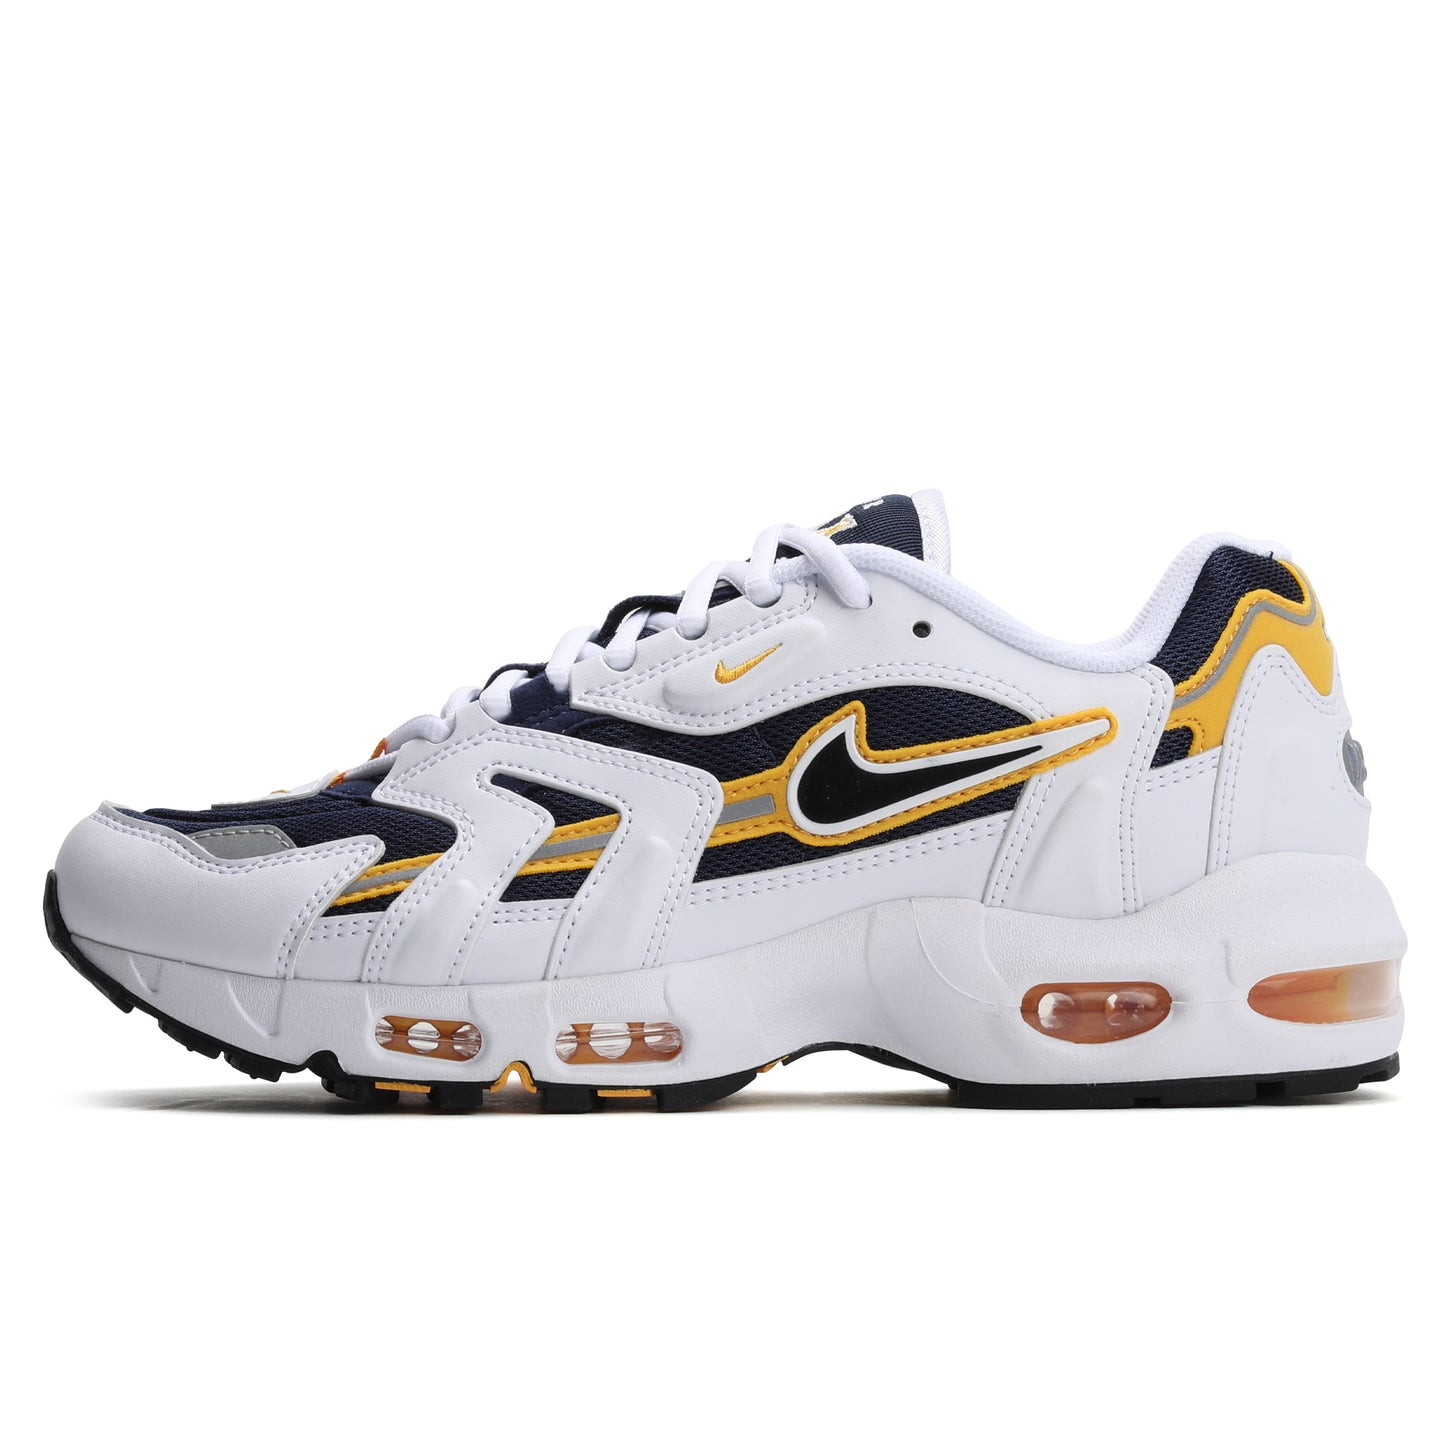 Nike Air Max 96 II White Midnight Navy